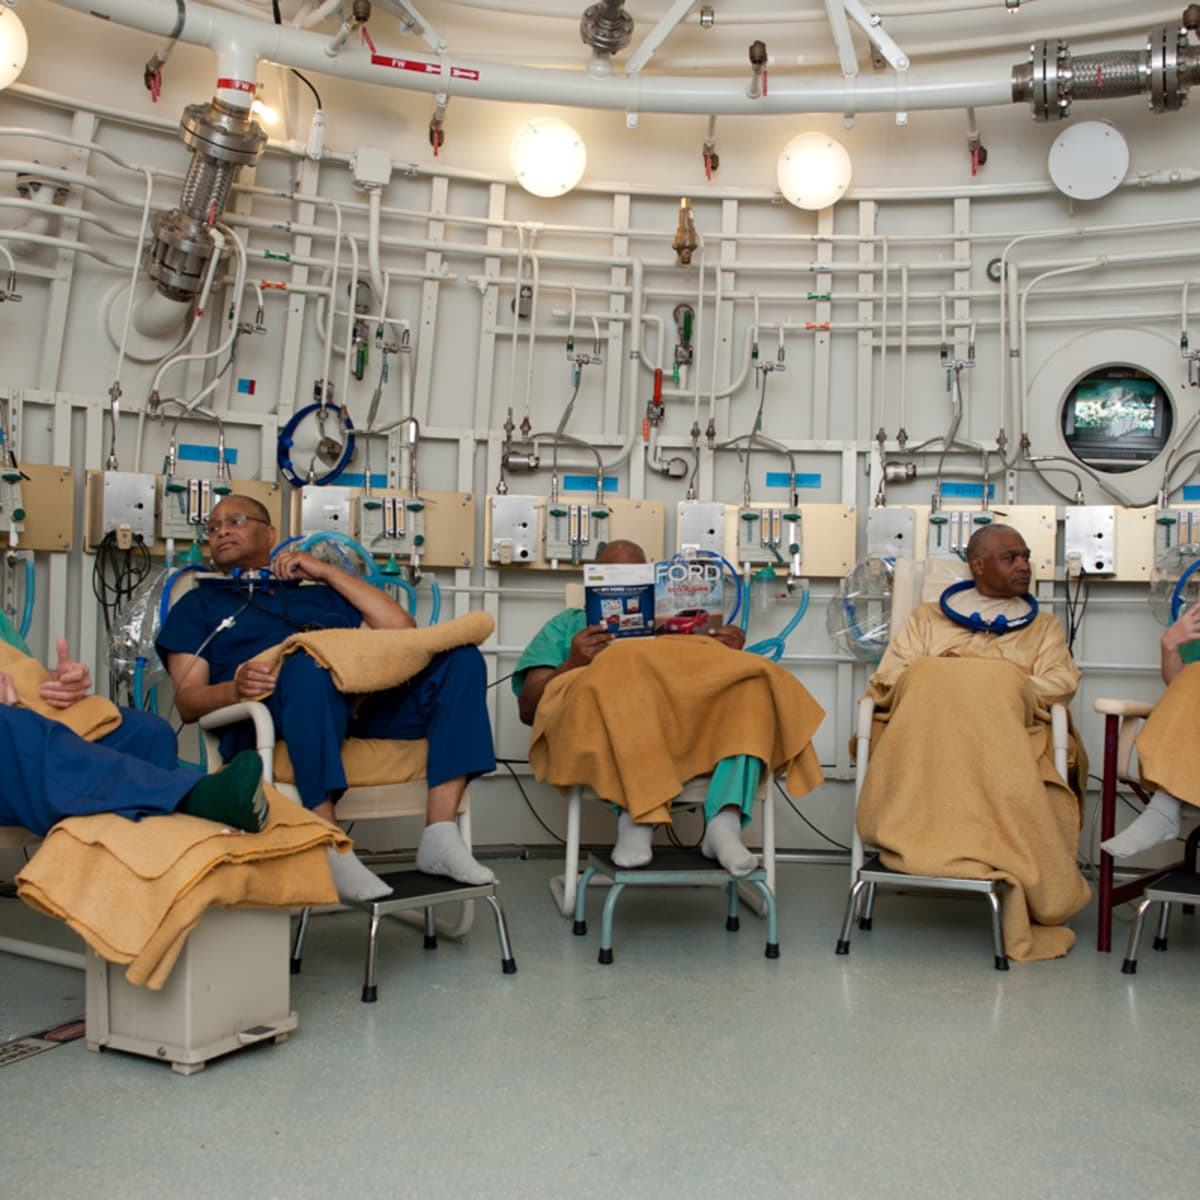 What should be hyperbaric oxygen therapy cost in Canada?